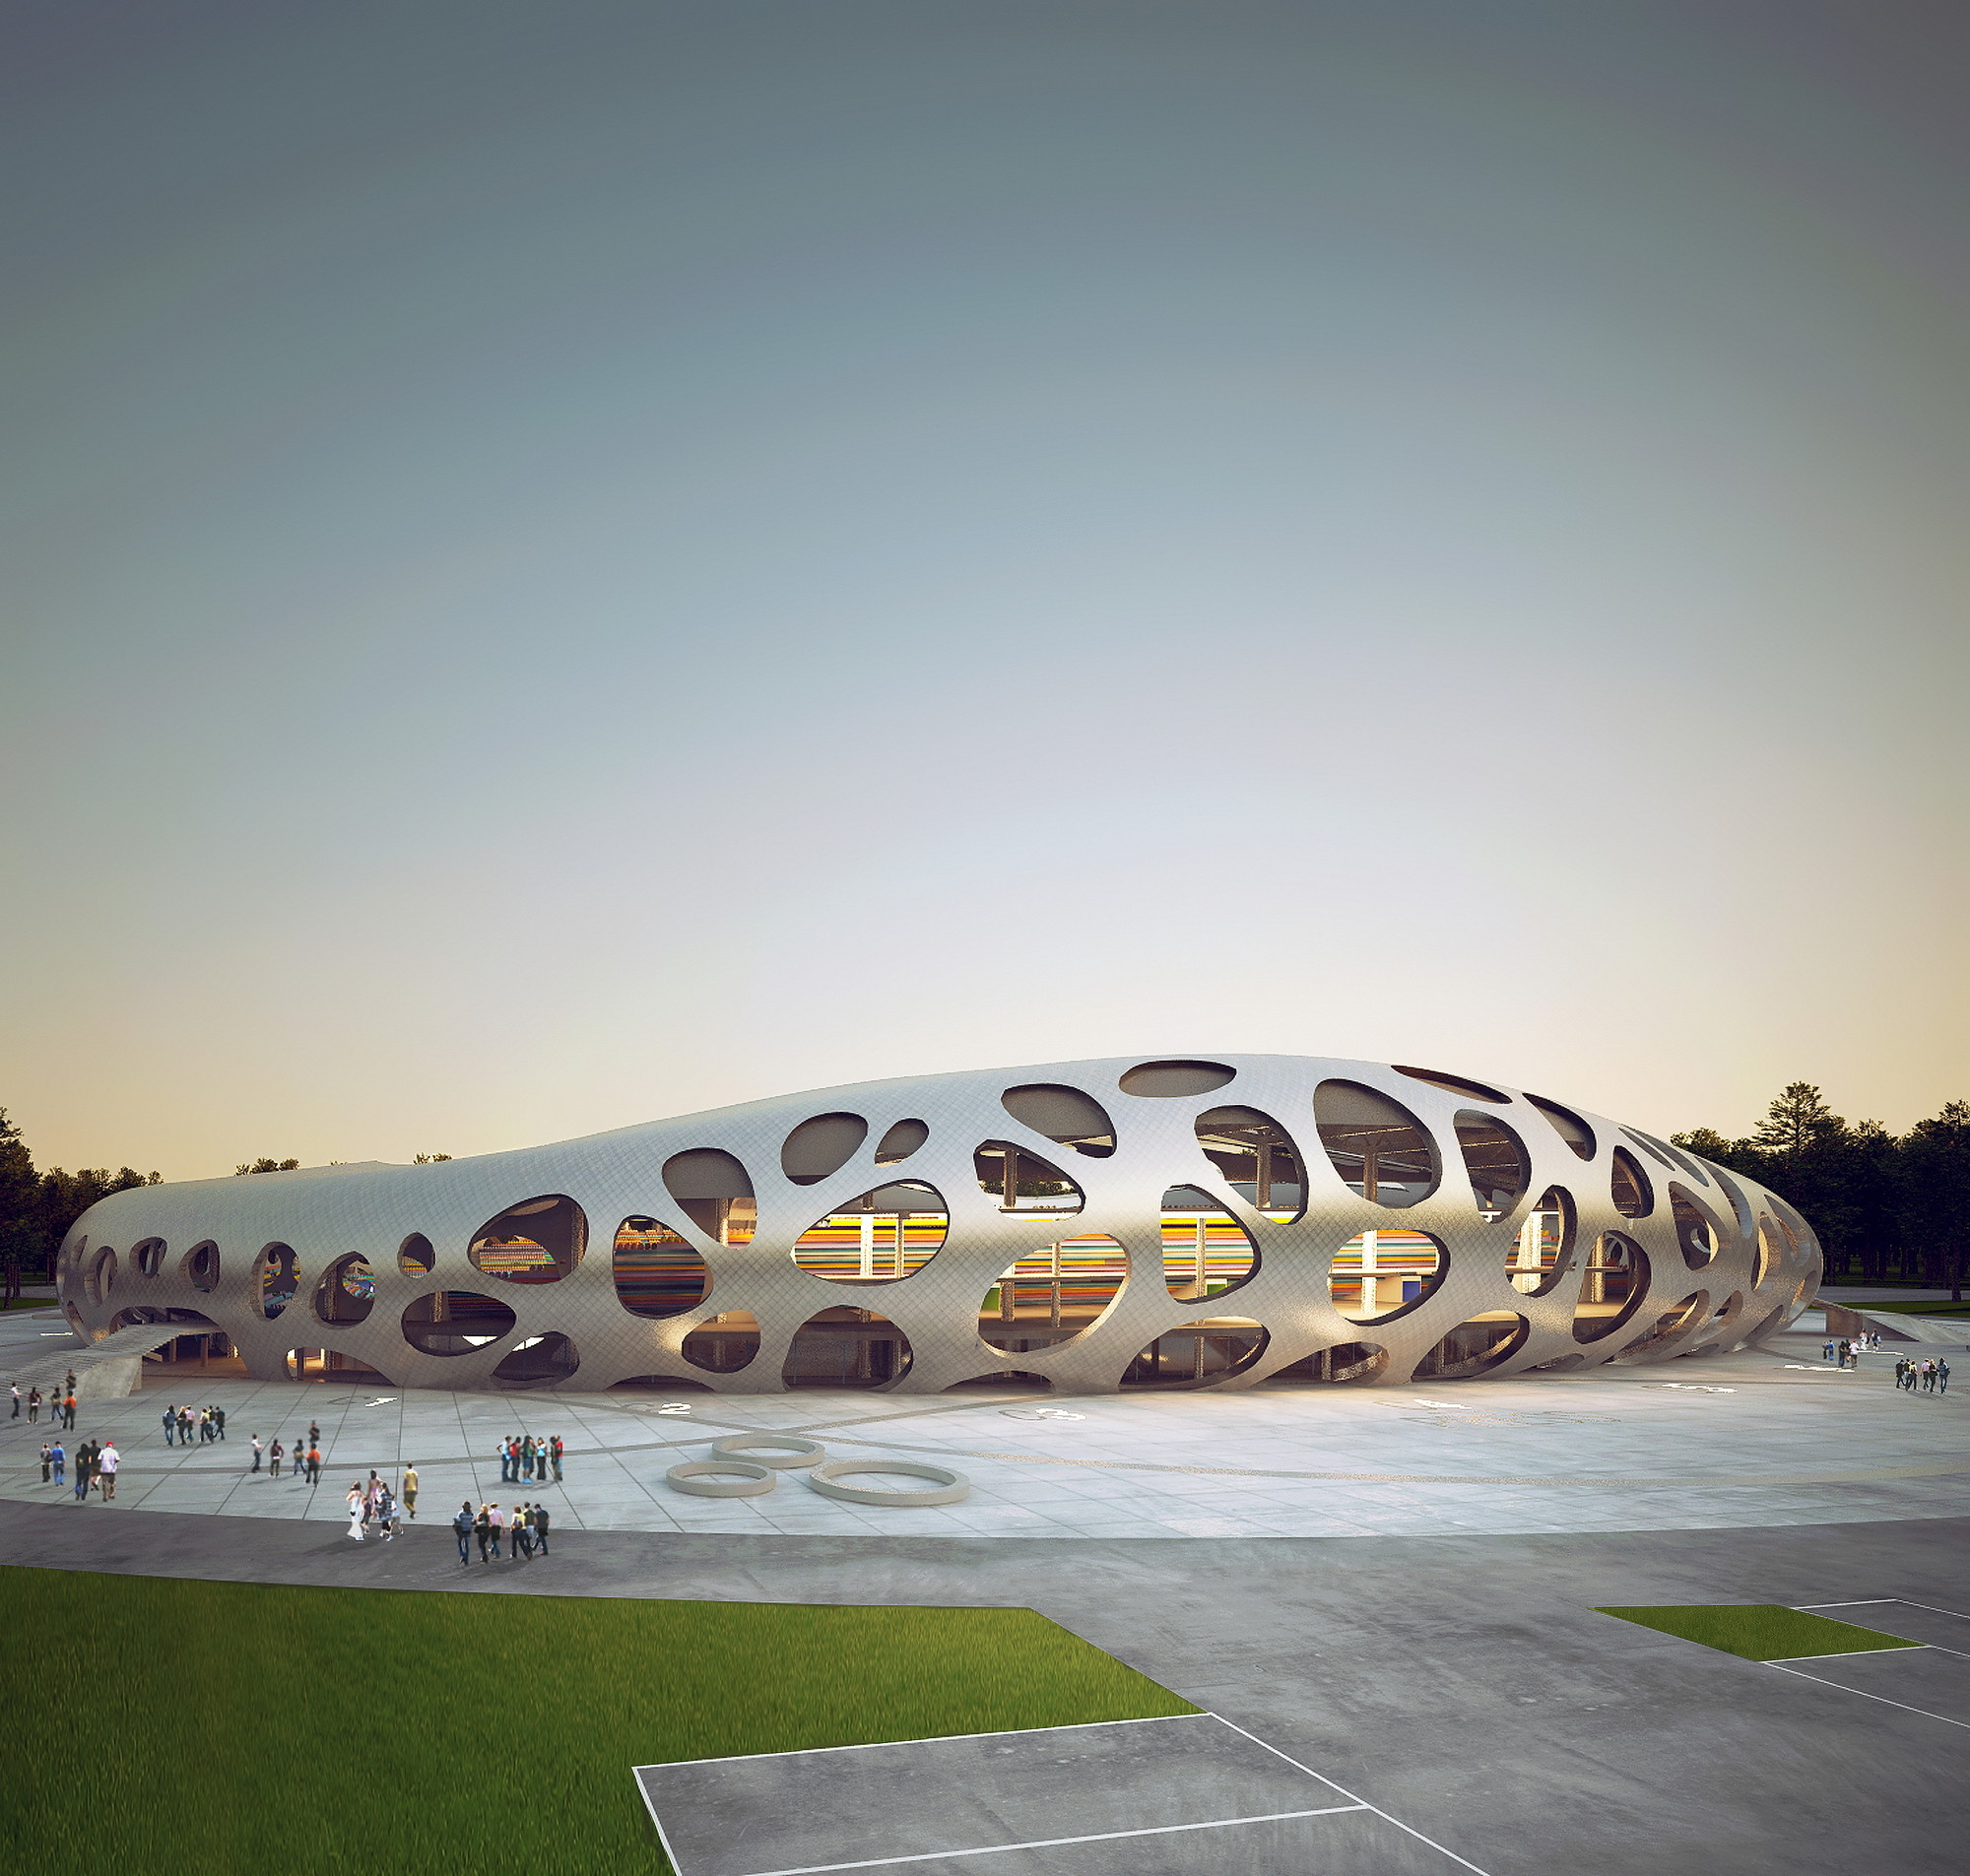 Borisov Football Stadium / OFIS Architects, Courtesy of OFIS Architects